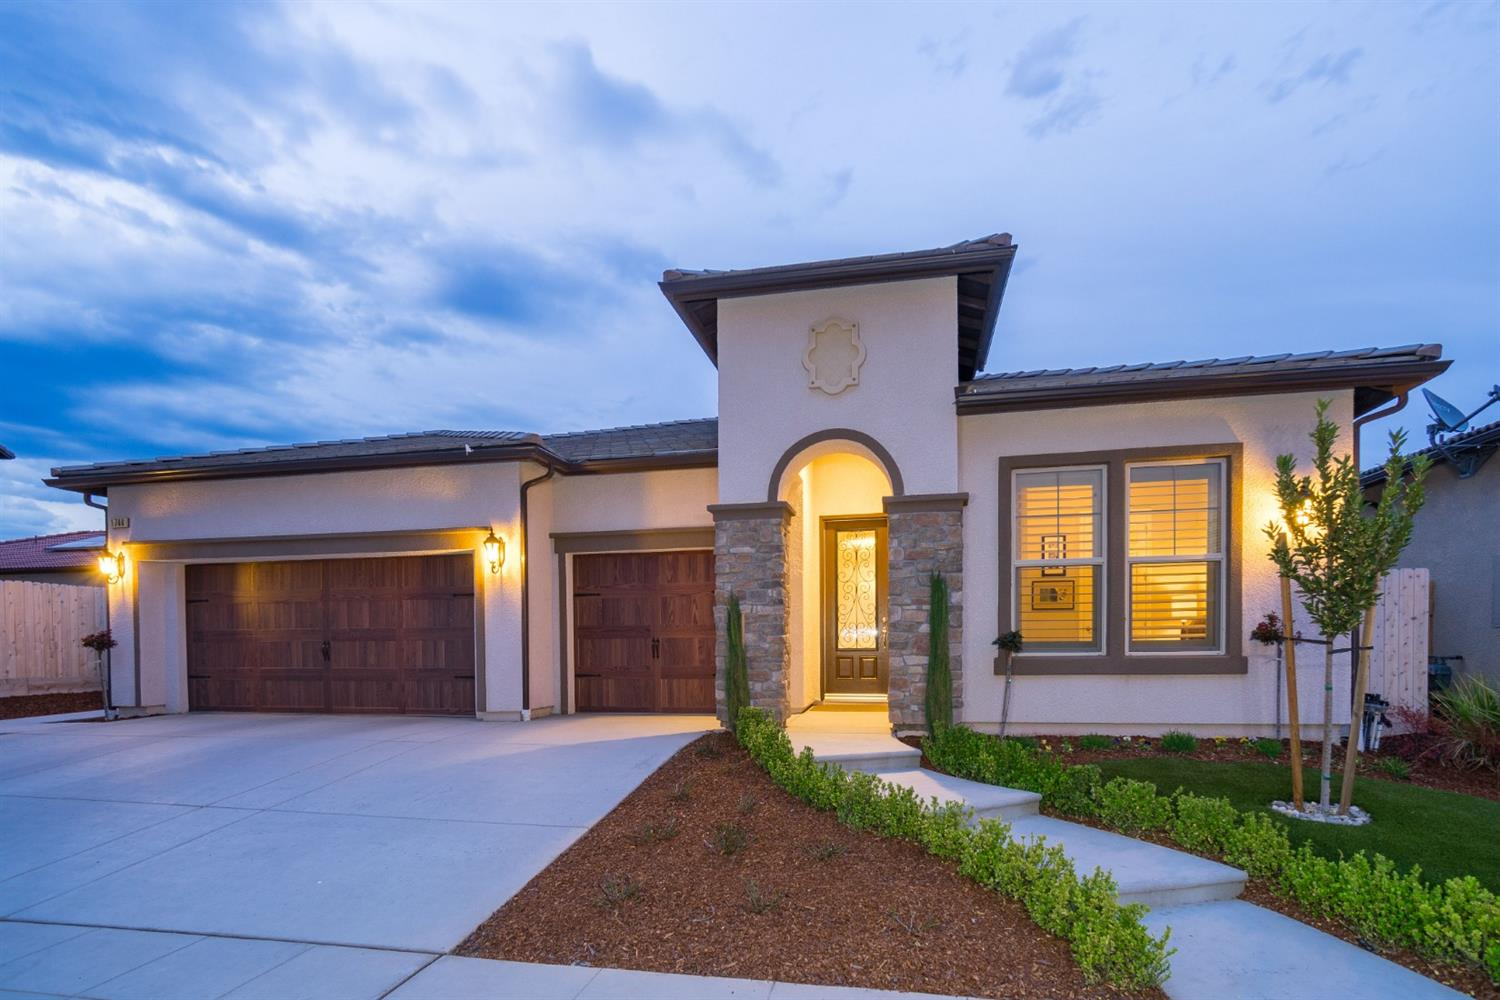 Located in the prestigious Copper River Ranch community within the gates of Via Fiore, this wonderful Bella Model is ready to go! Built less than 2 years ago by the award winning builder Granville Homes, you will be welcomed into a bright open concept living space ideal for entertaining. Featuring 4 bedrooms and 3 bathrooms, this home is also equipped with granite counter tops, stainless steel appliances, recessed lighting, updated flooring, surround sound throughout, and motorized blinds at your control! The master suite showcases his and her vanities, an over-sized soaking tub and large master walk-in closet to fit anyone's shopping habits! Do not miss out on this great opportunity near Copper River CC, parks, and top of the line schools.